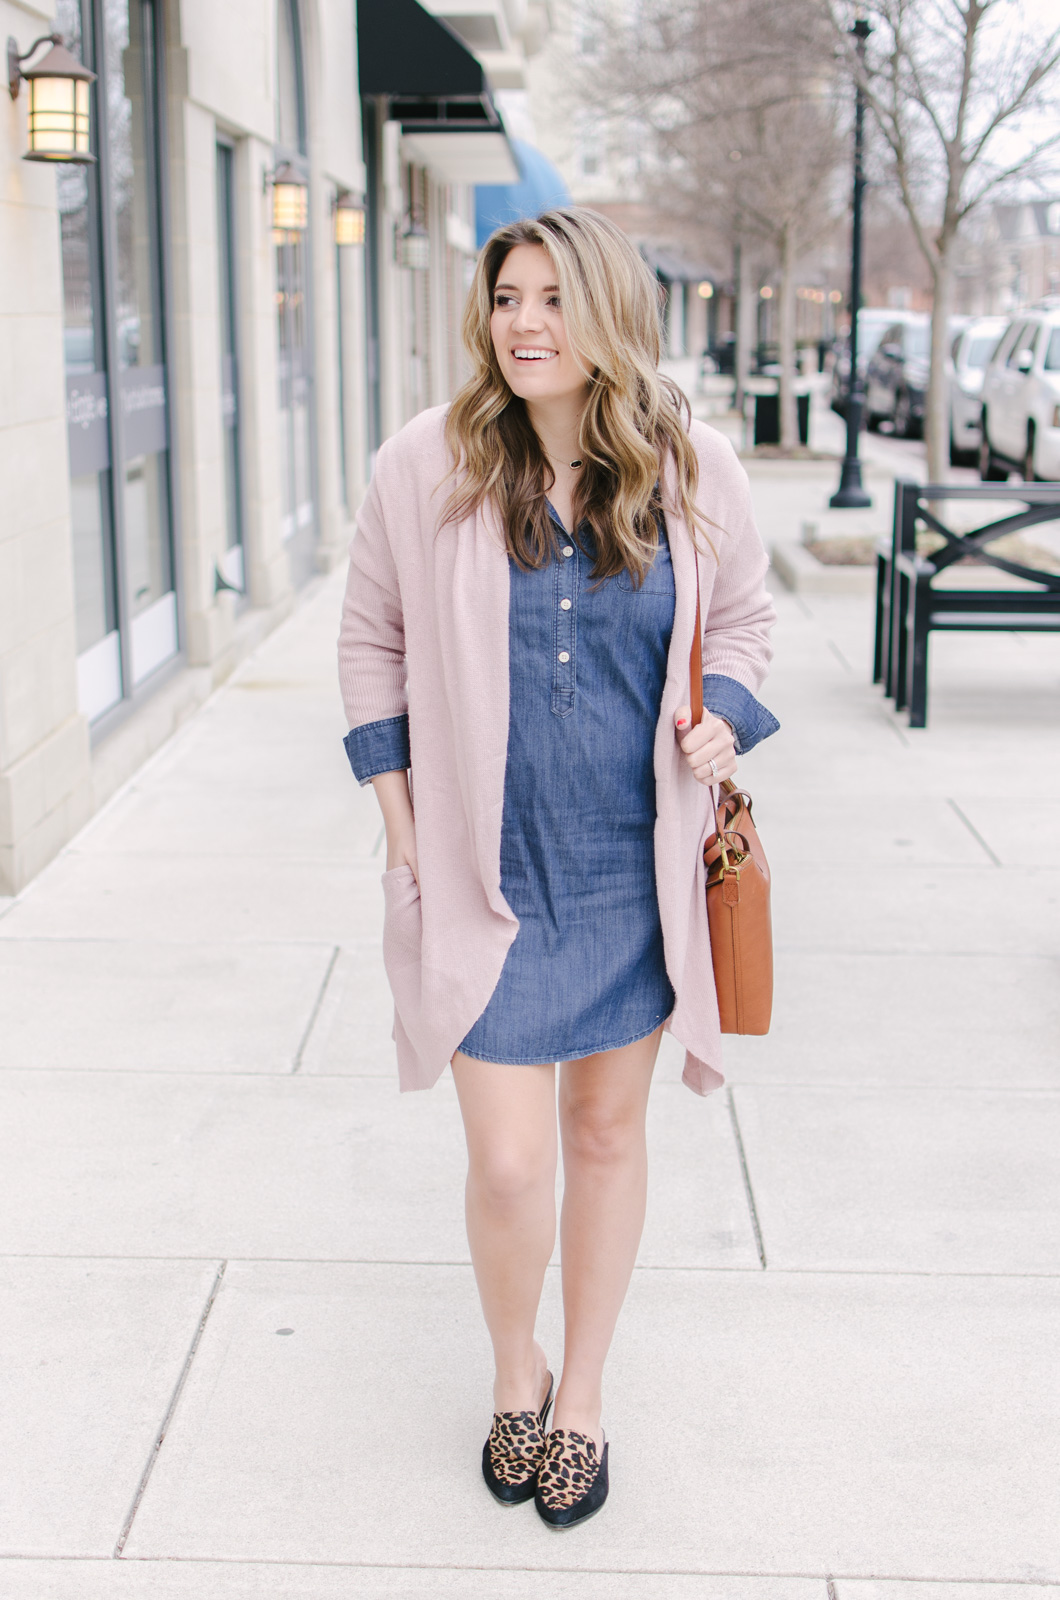 spring outfit chambray dress - how to wear a chambray dress spring | bylaurenm.com